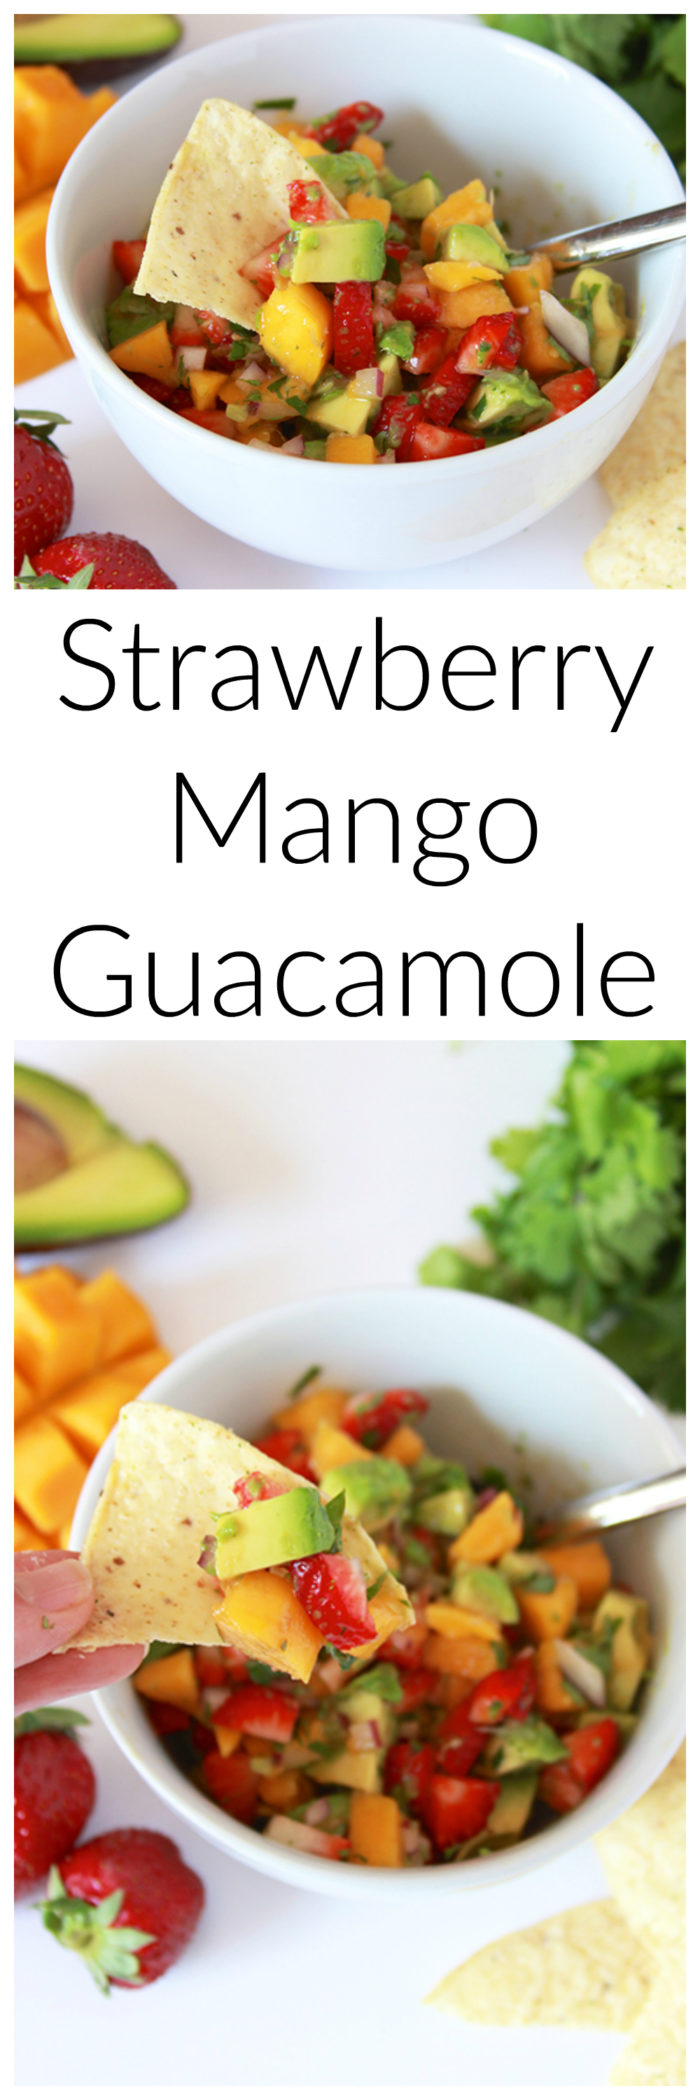 Strawberry Mango Guacamole on www.cookingwithruthie.com is just what your next fiesta needs! Packed with fresh ingredients that's the perfect blend of both savory and sweet.